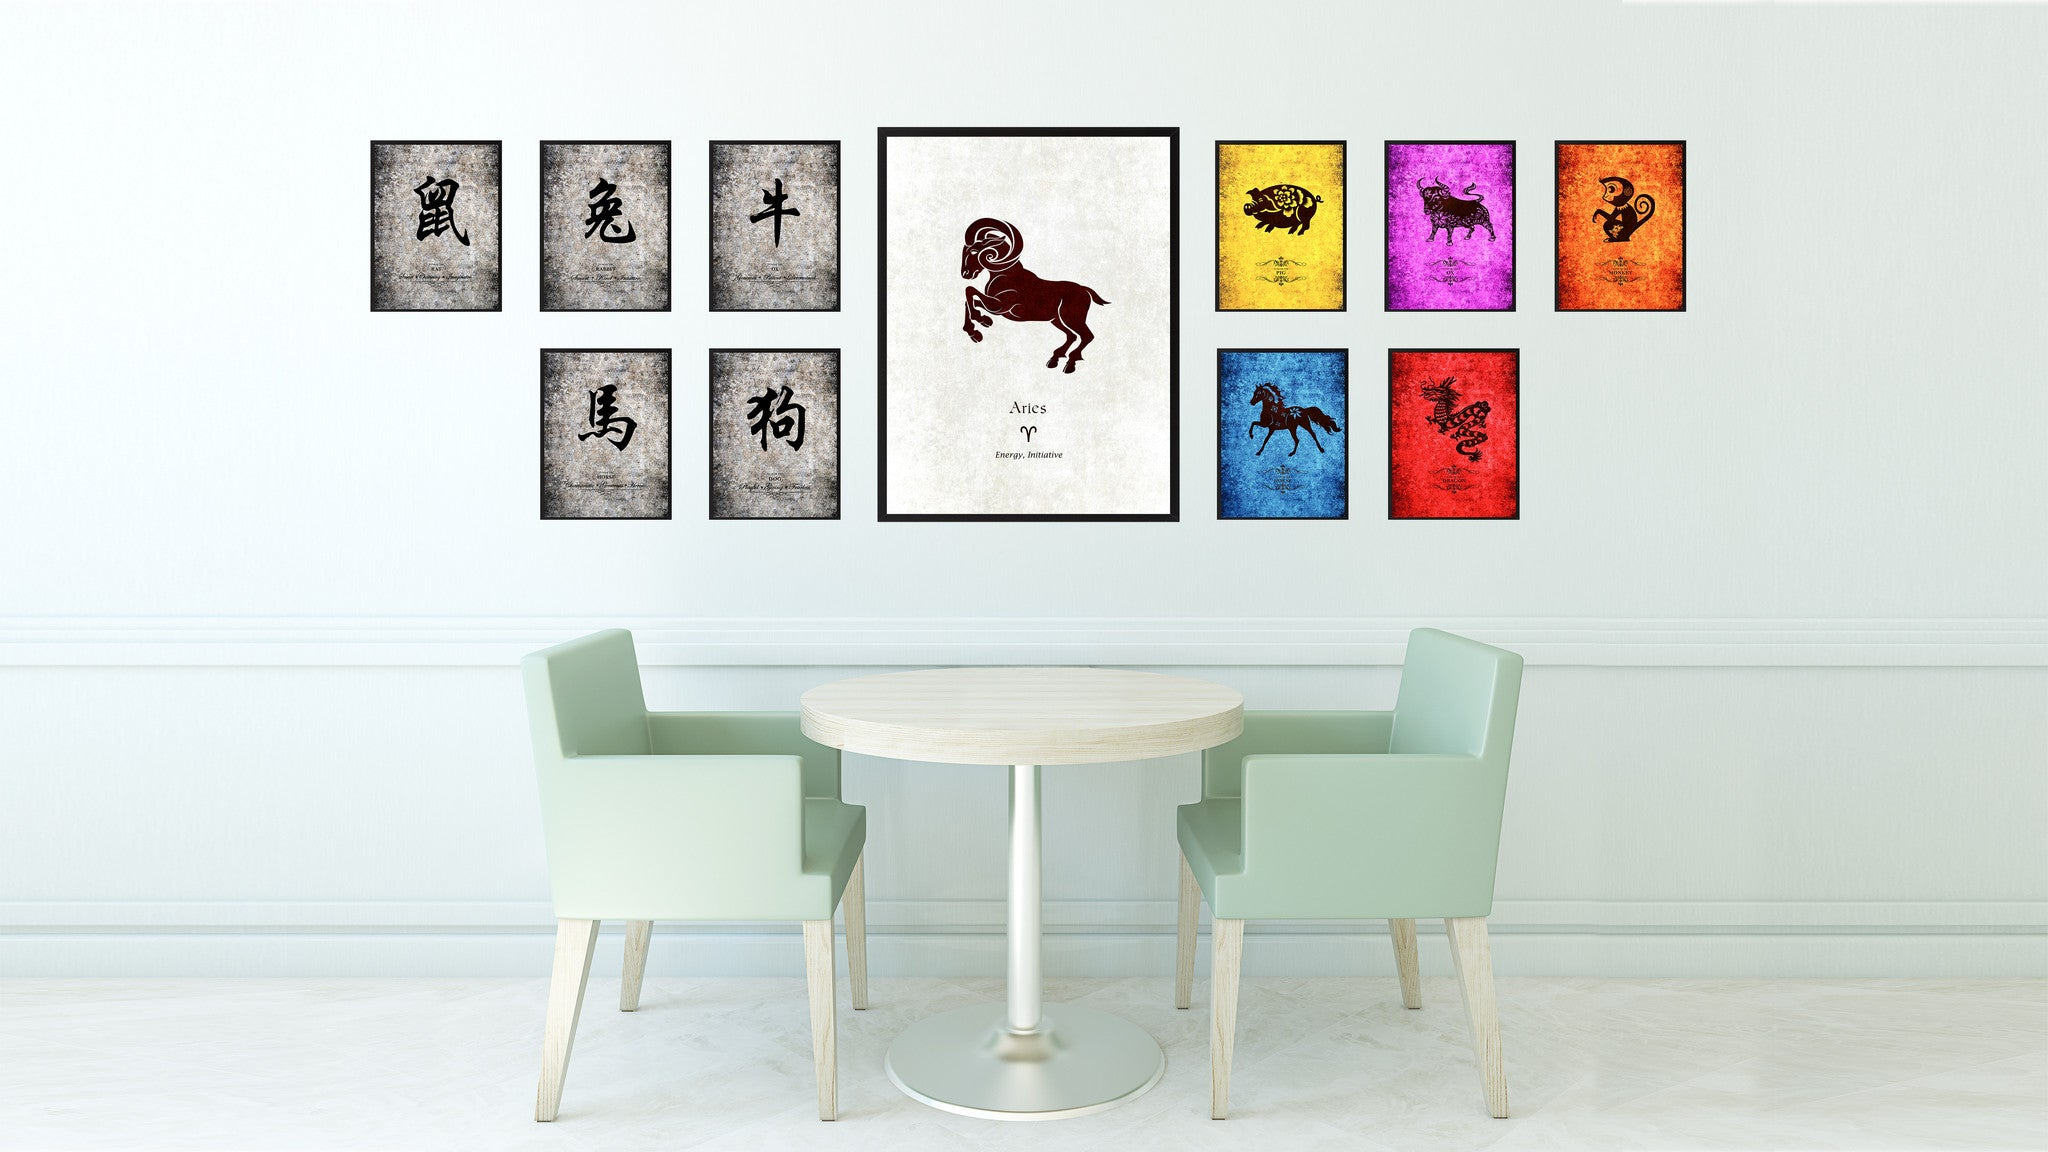 Zodiac Aries Horoscope Astrology Canvas Print, Picture Frame Home Decor Wall Art Gift